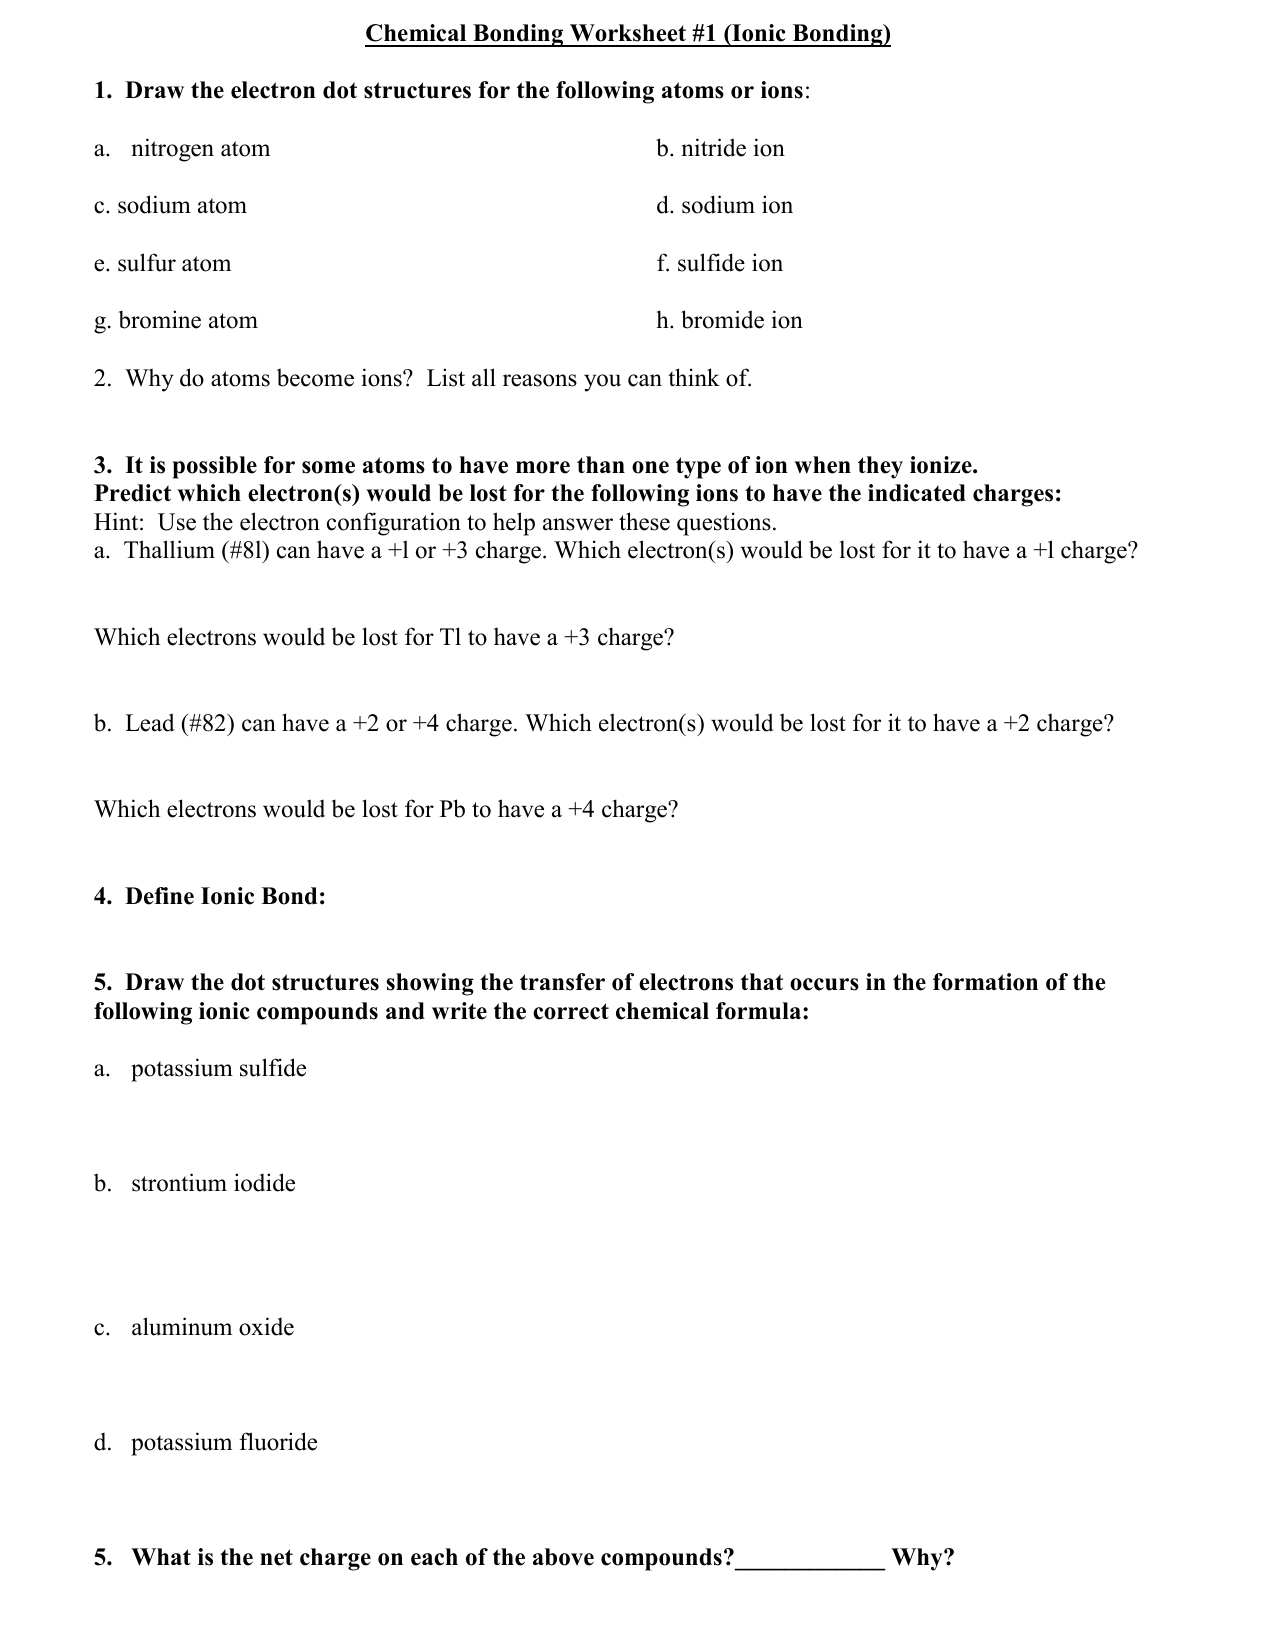 Chemical Bonds Worksheet Answers | Newatvs.Info